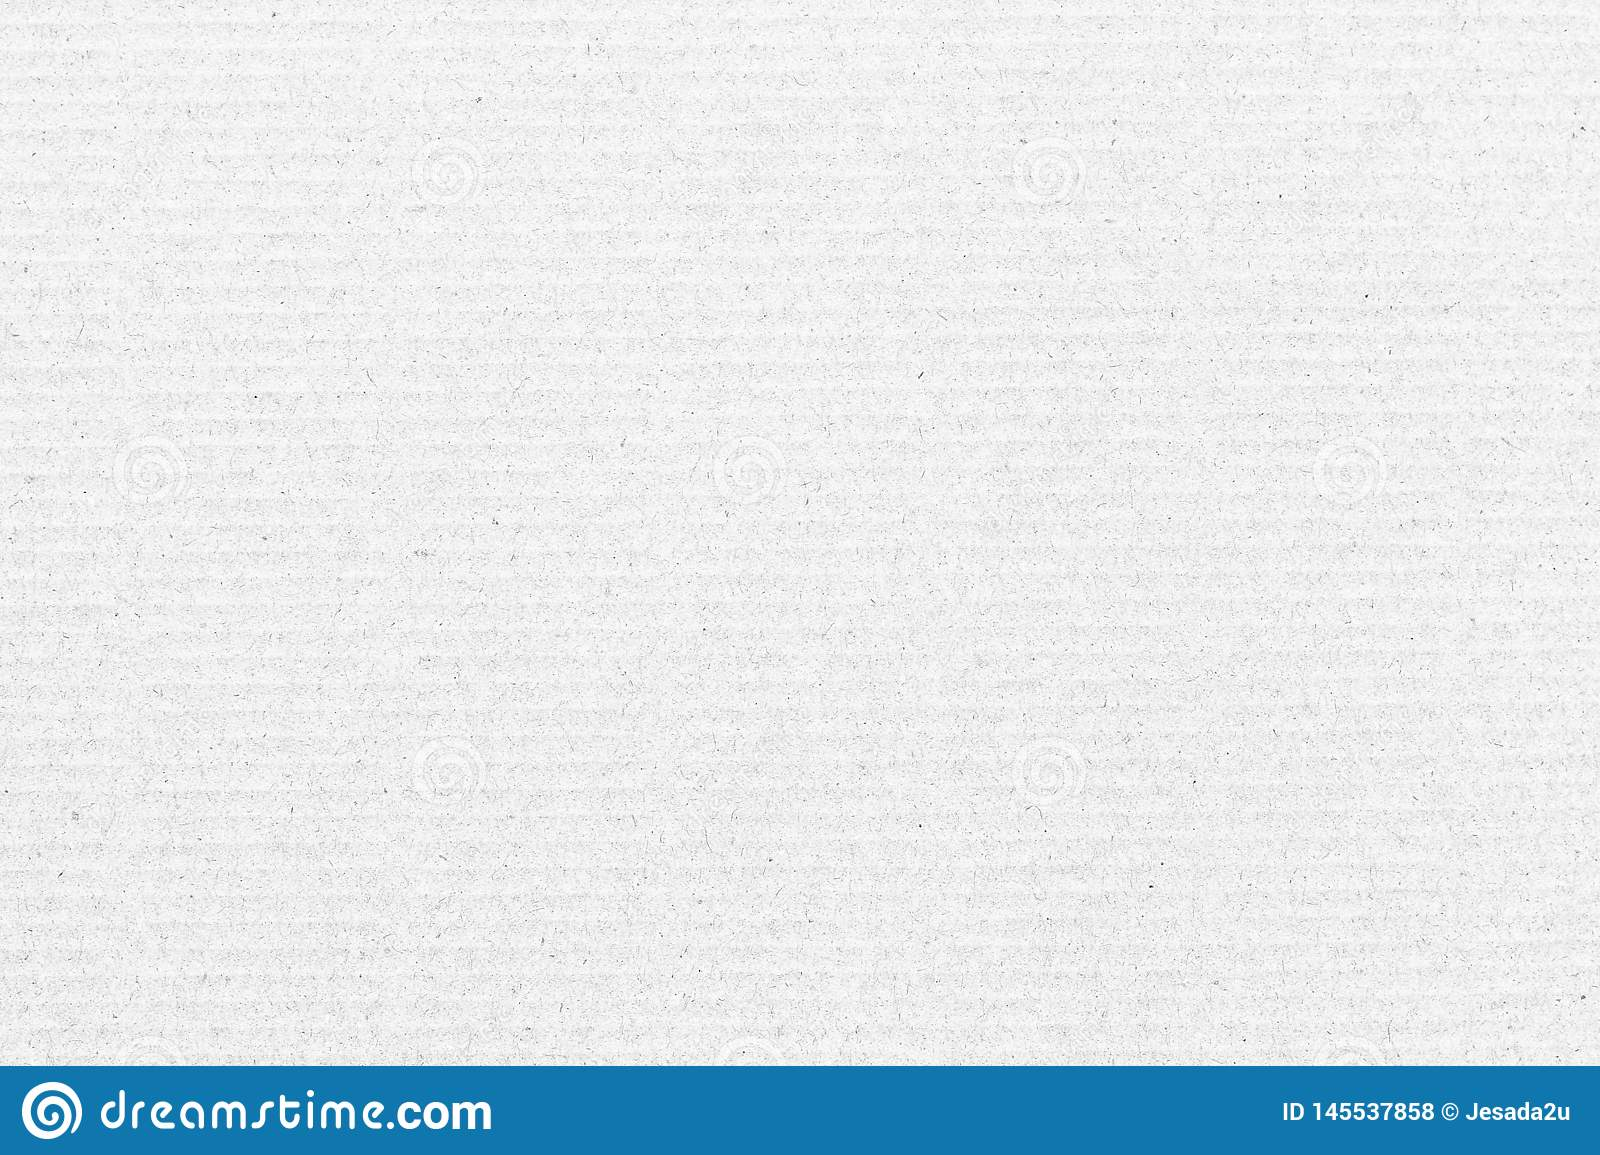 White Craft Paper Line Canvas Texture Background For Design Backdrop Or Overlay Design Stock Photo Image Of Design Pattern 145537858